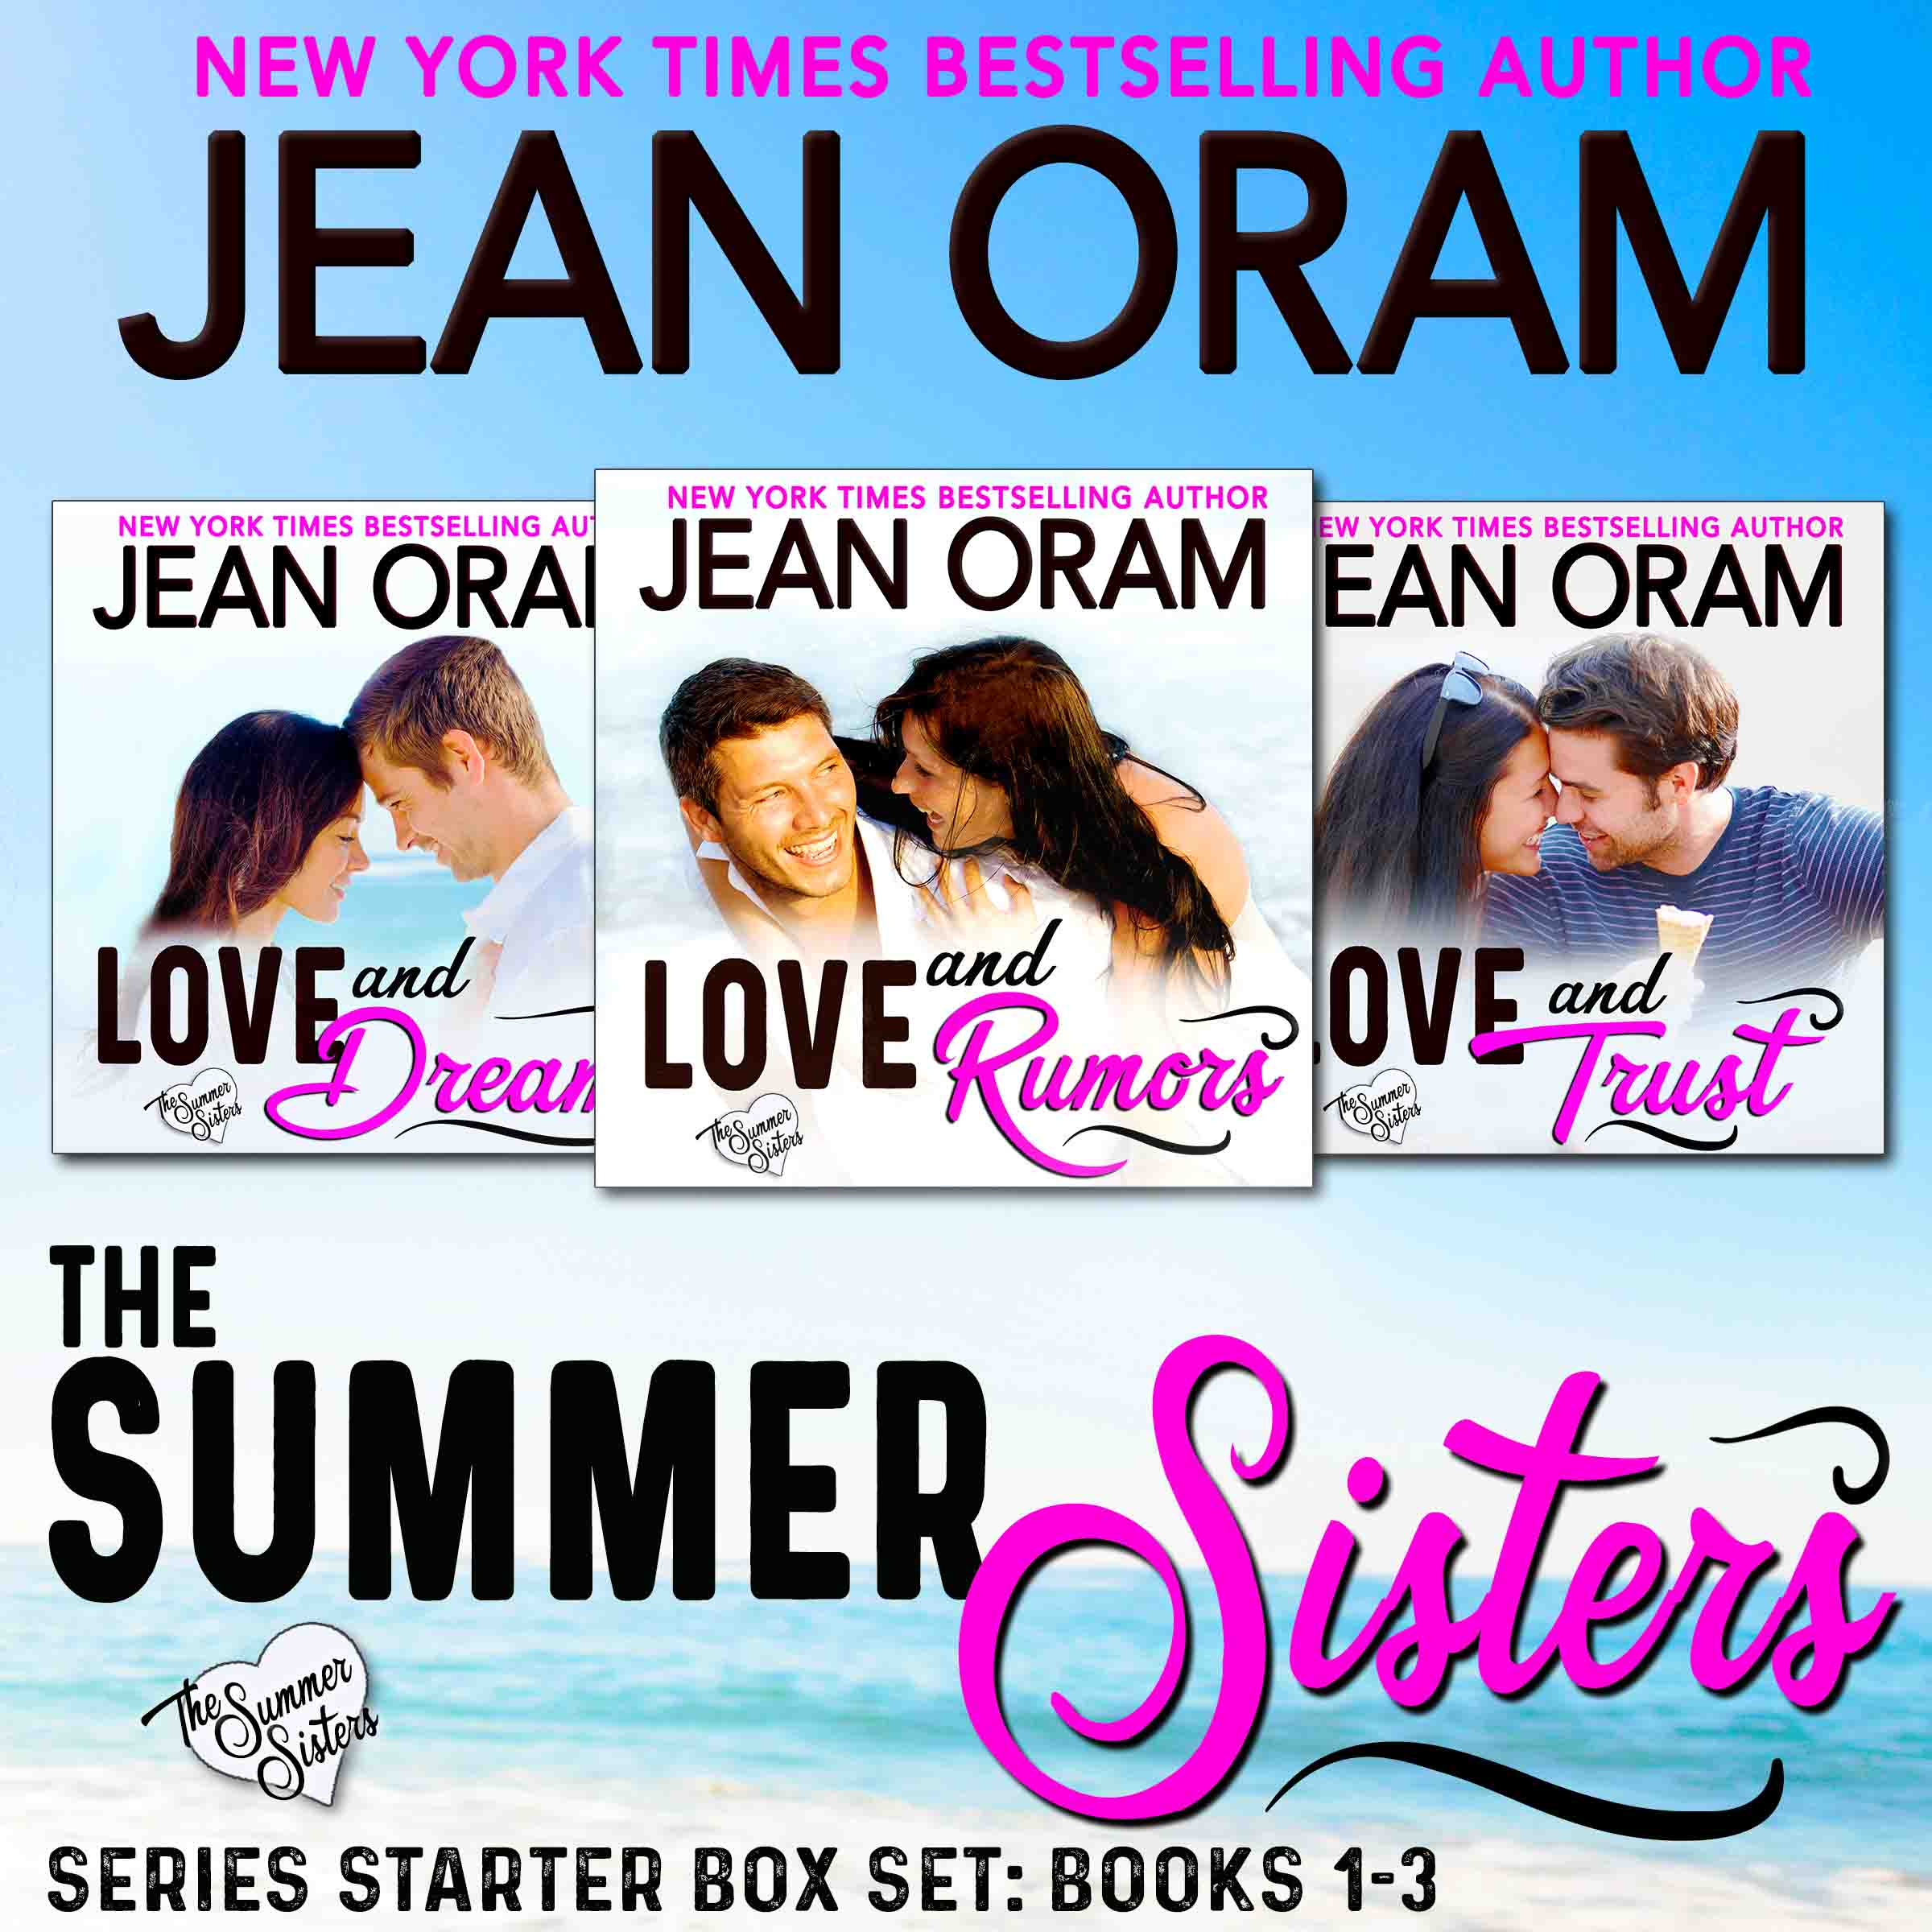 Love and Rumors, book 1 in the bestselling romance series, The Summer Sisters, set in Muskoka, Ontario and written by Jean Oram. Canadian cottage country romance. Love and Dreams, book 2. Love and Trust, book 3. Sweet small town romance.